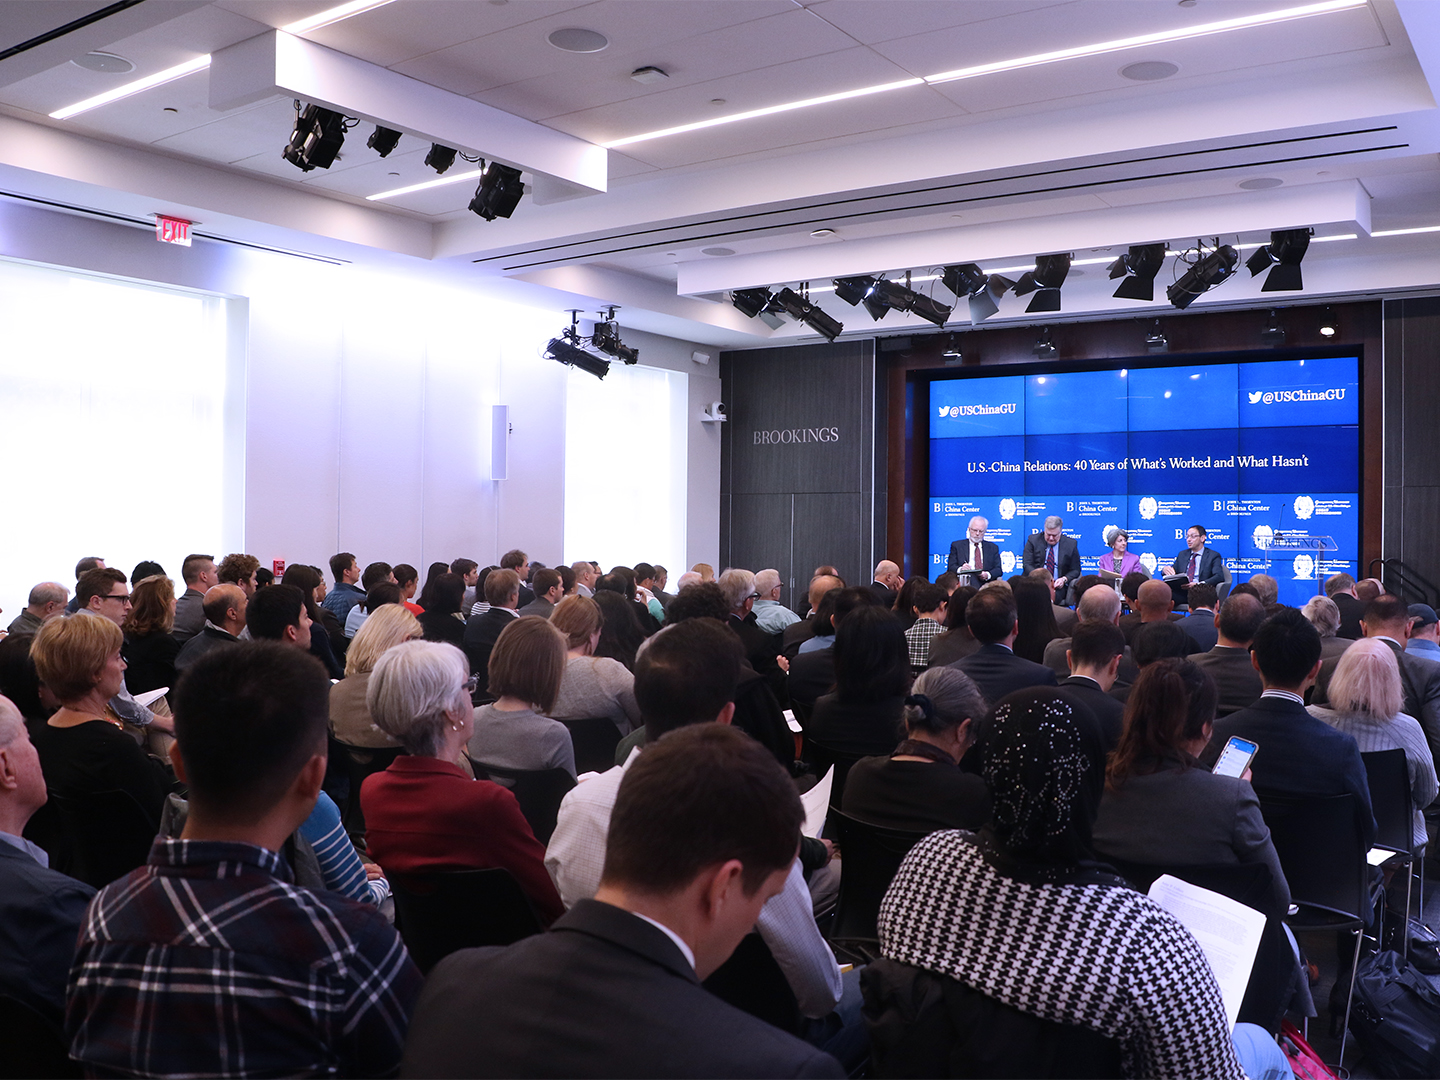 Guests watching the U.S.-China Dialogue Podcast launch event at the Brookings Institution.